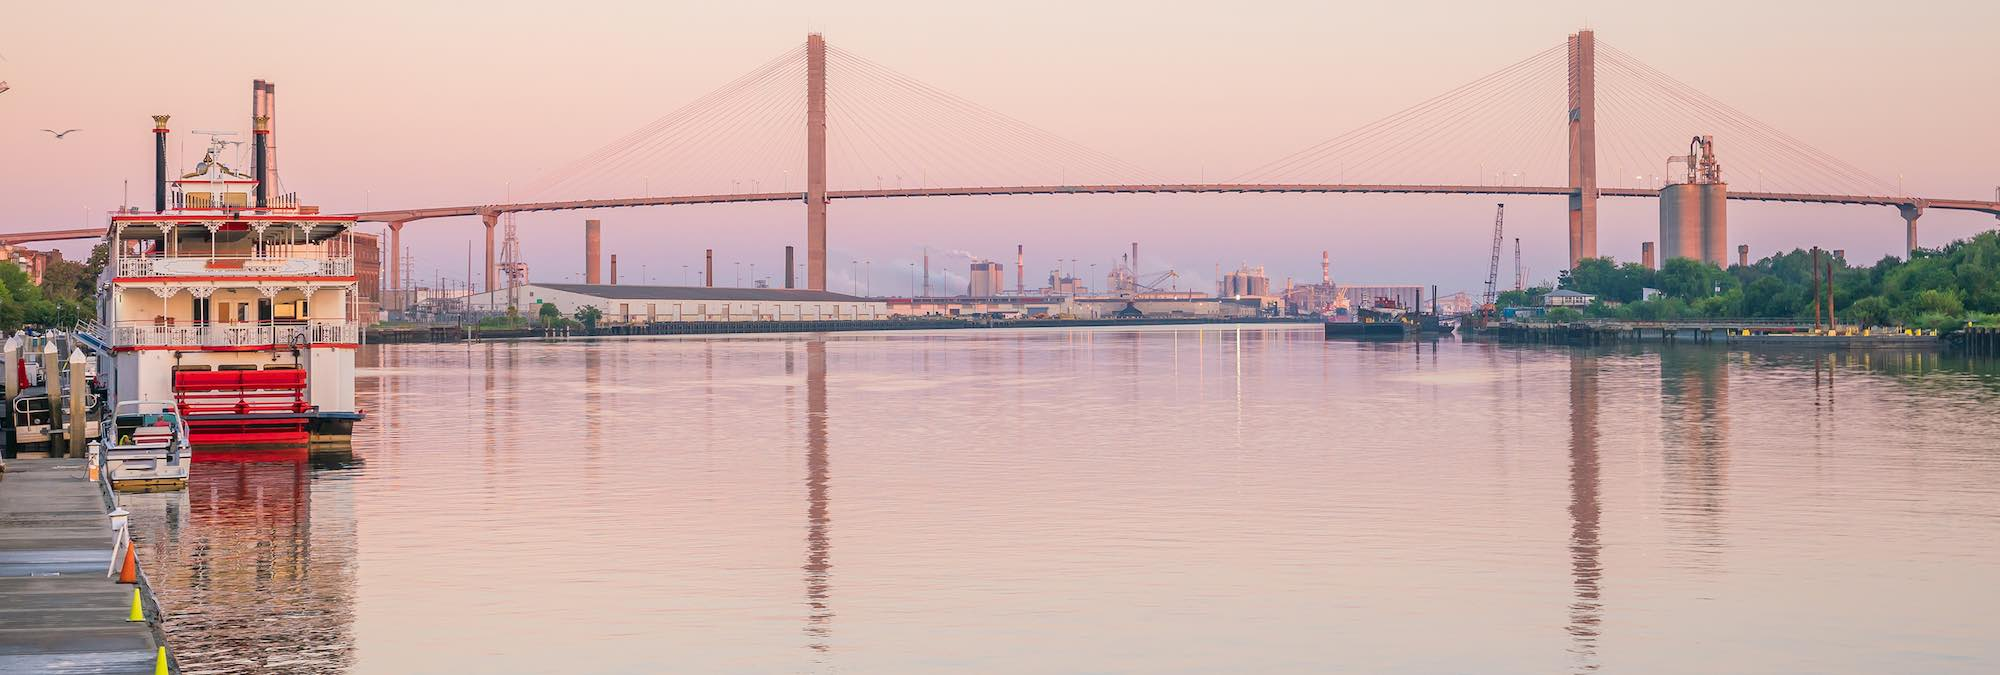 Savannah river boat and the Talmadge Bridge at twilight.